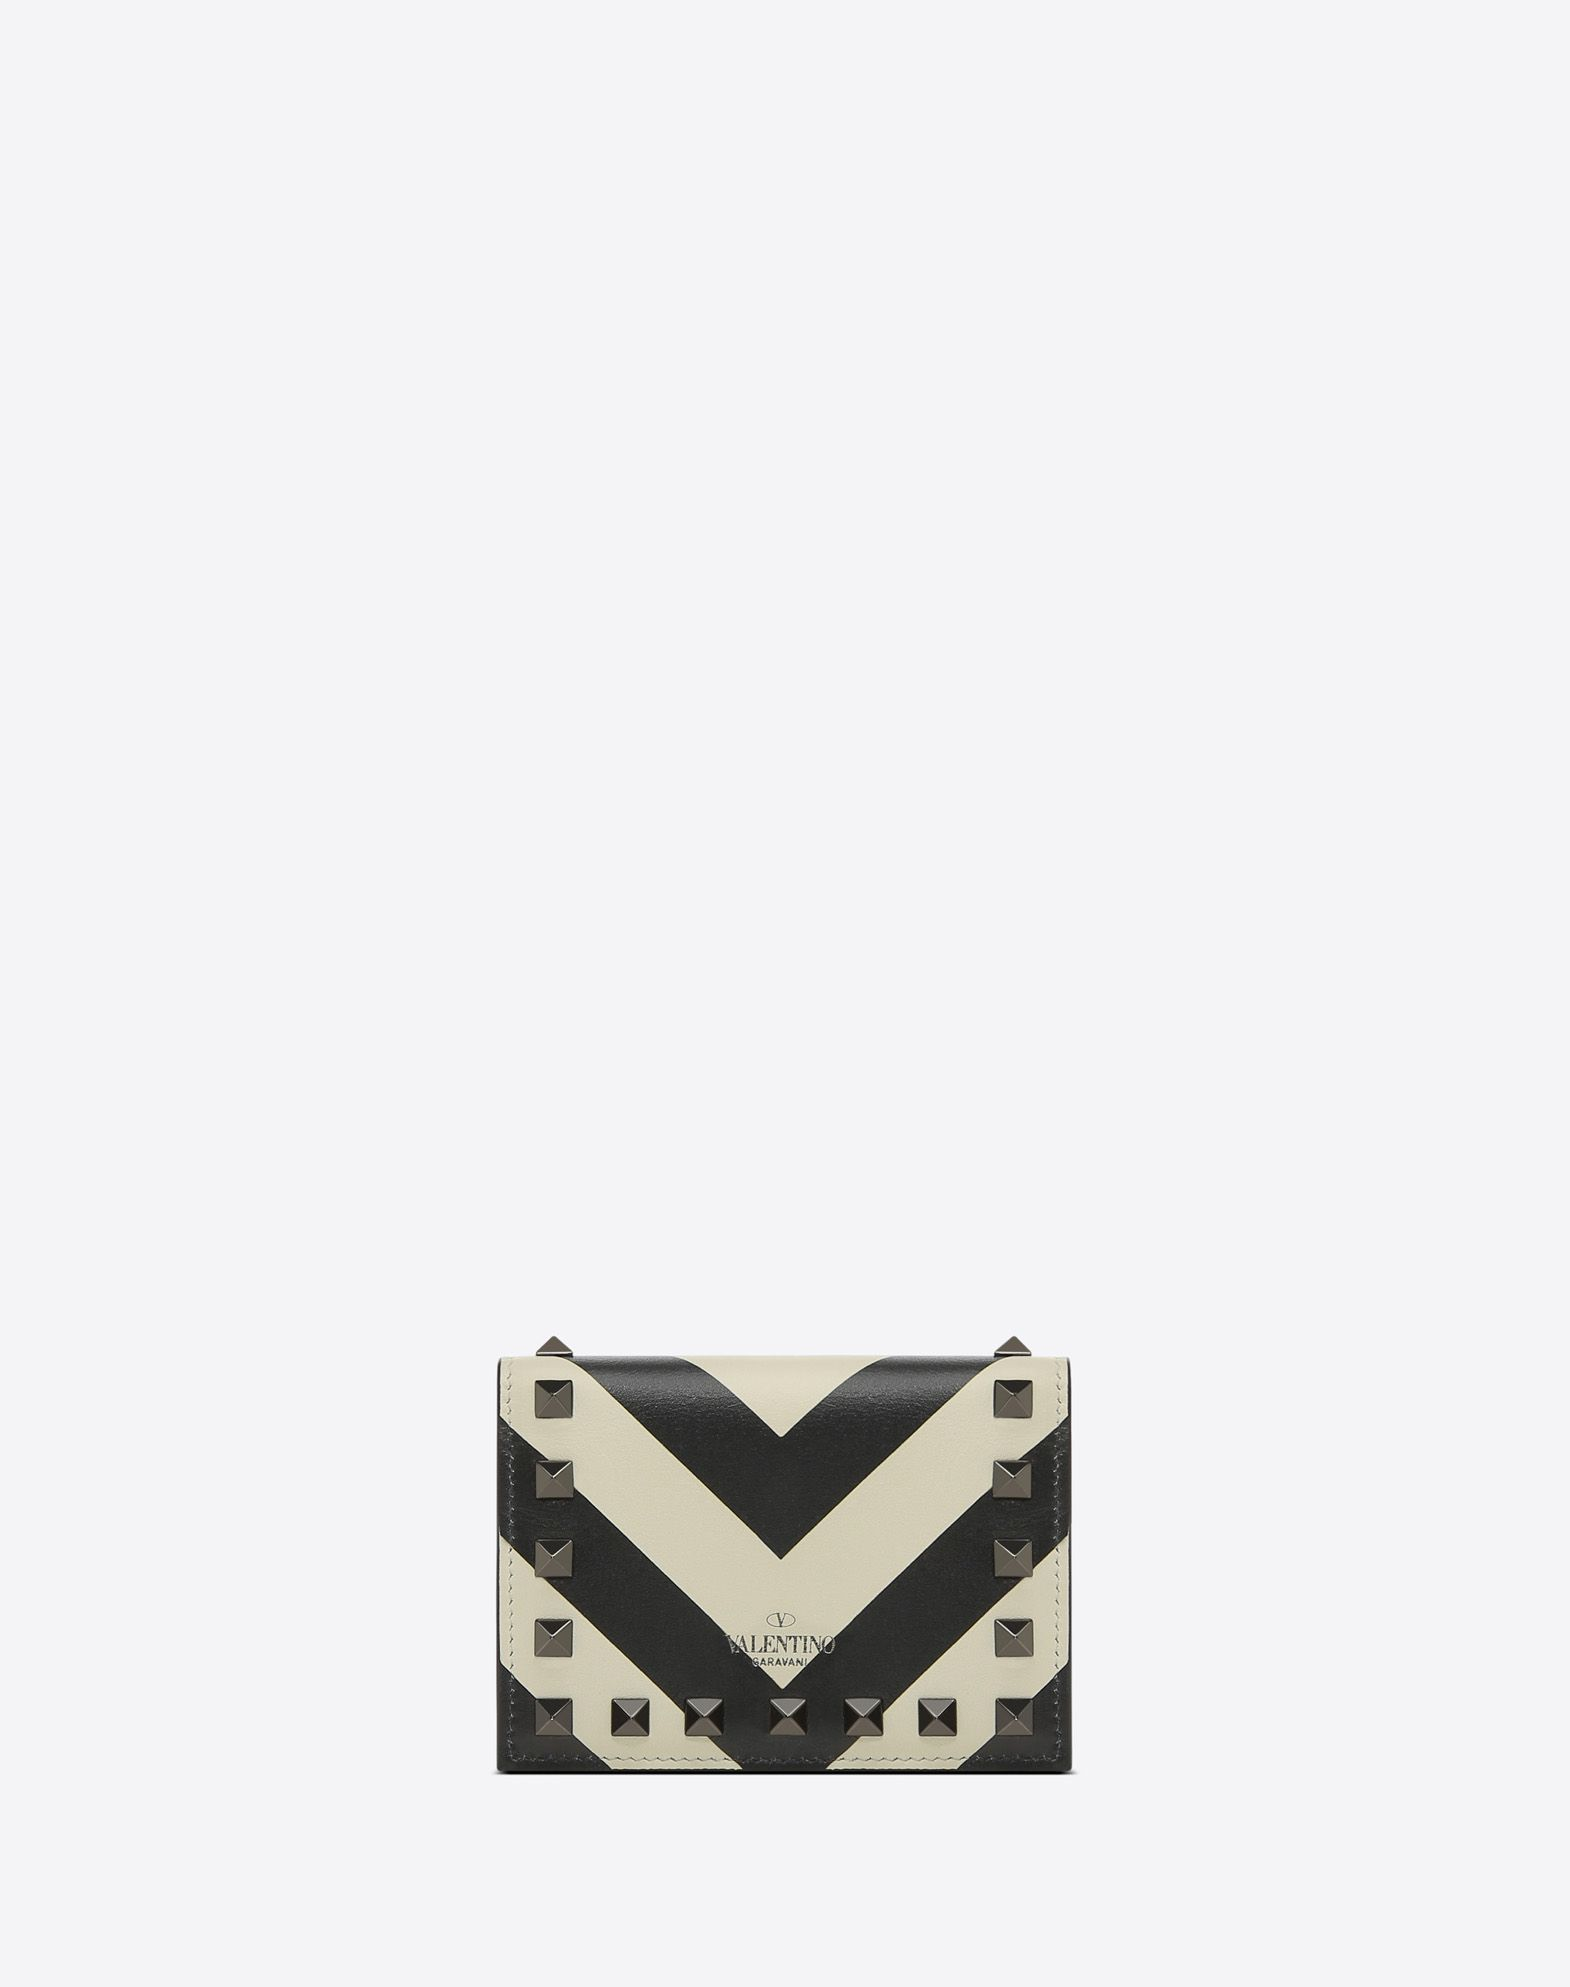 VALENTINO GARAVANI Rockstud Small Wallet COIN PURSES & CARD CASES D d